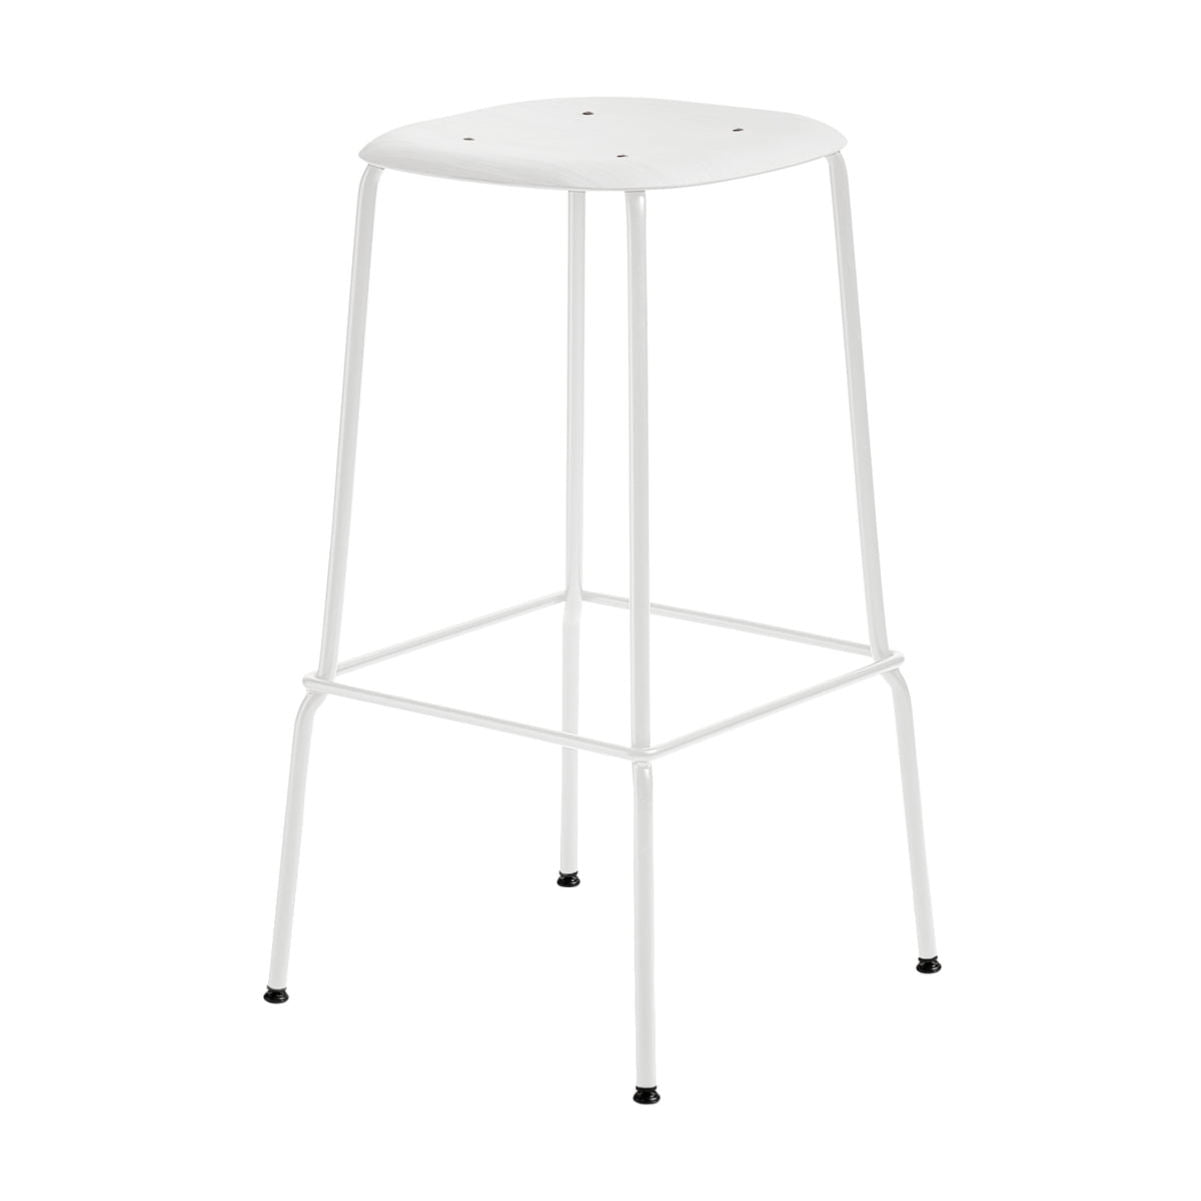 Hay Soft Edge P30 bar stool, white, white